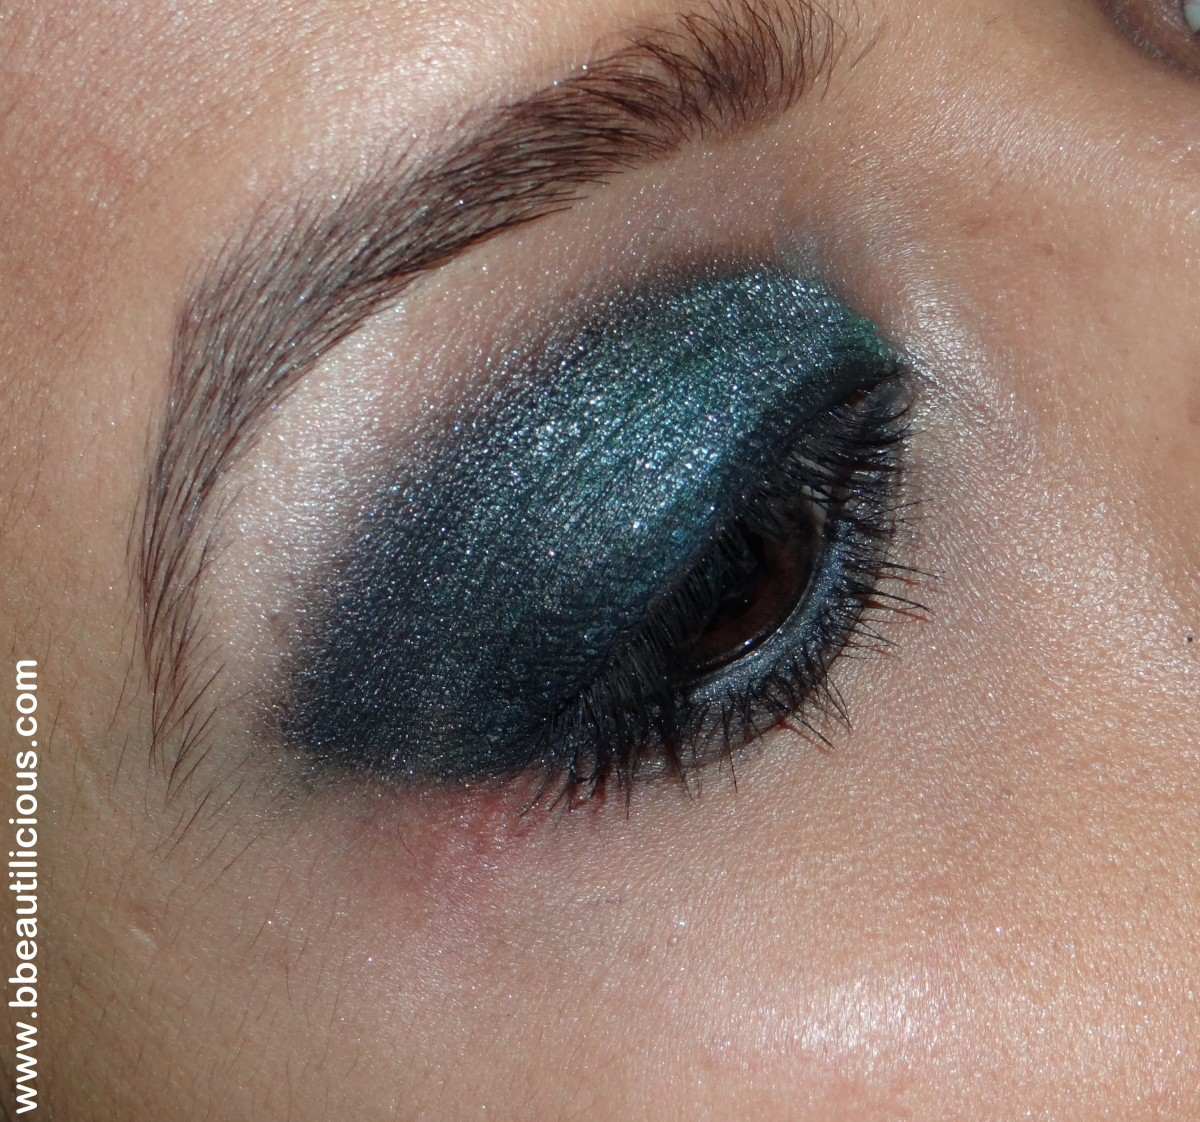 Inglot AMC eyeshadow 62 swatches and review